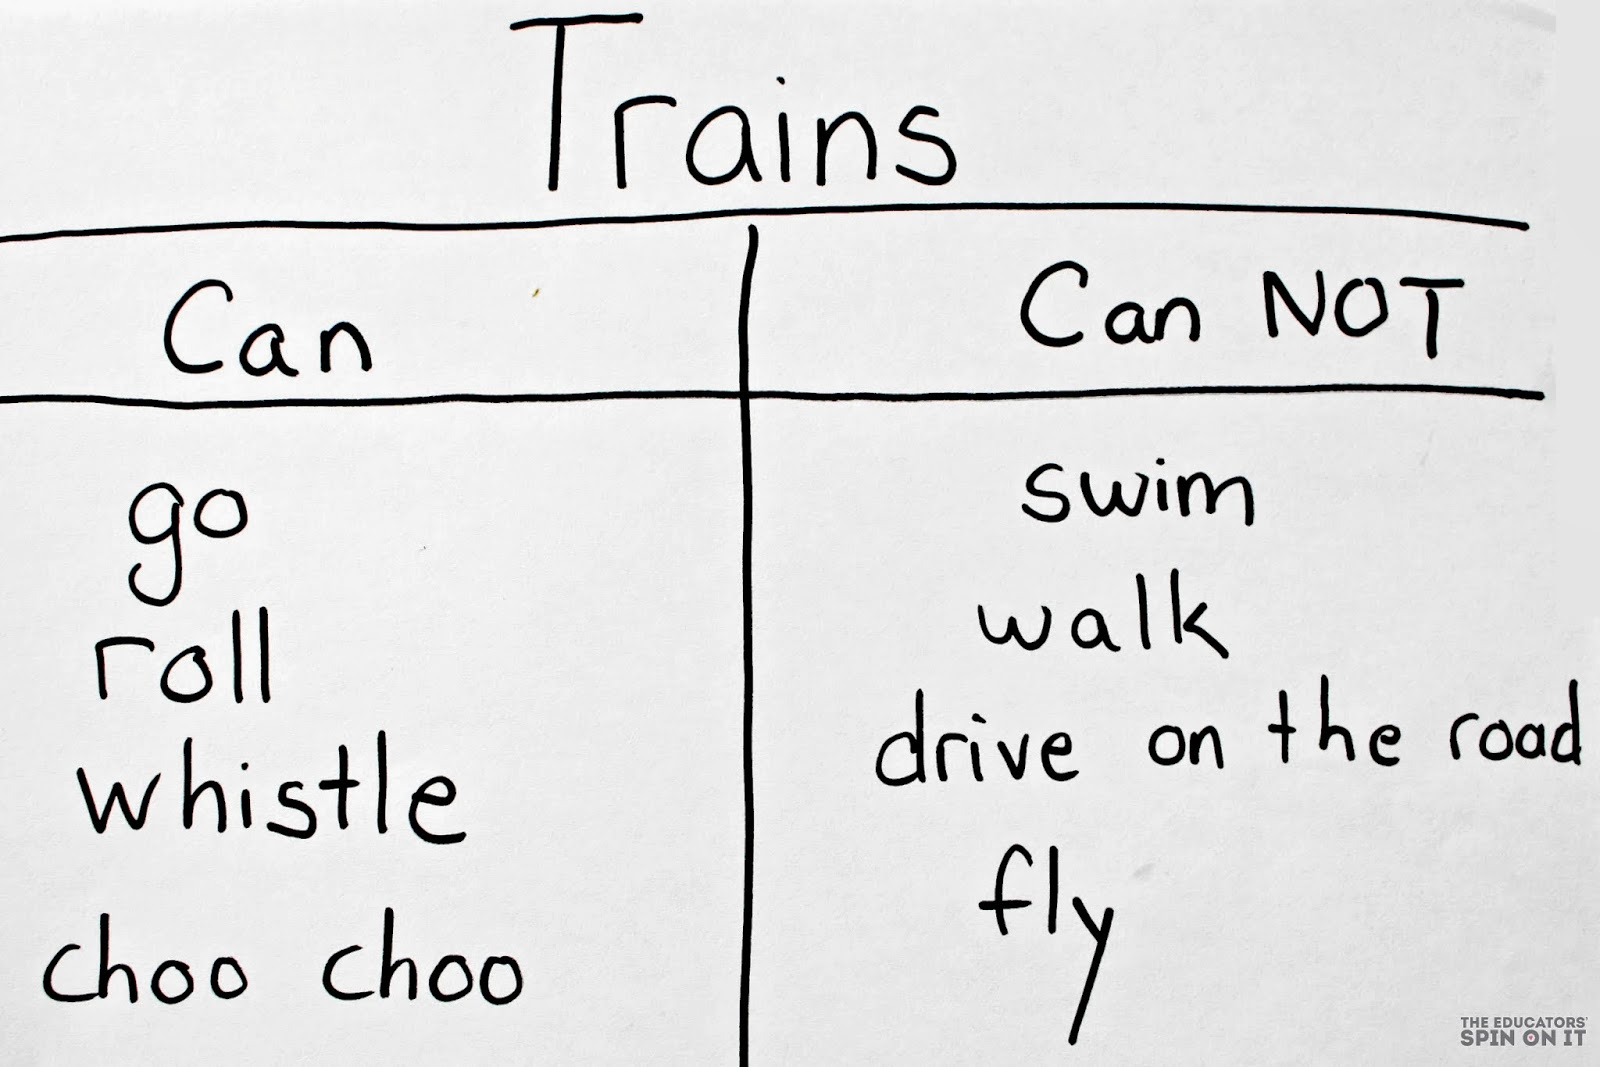 List of what trains can and cannot do